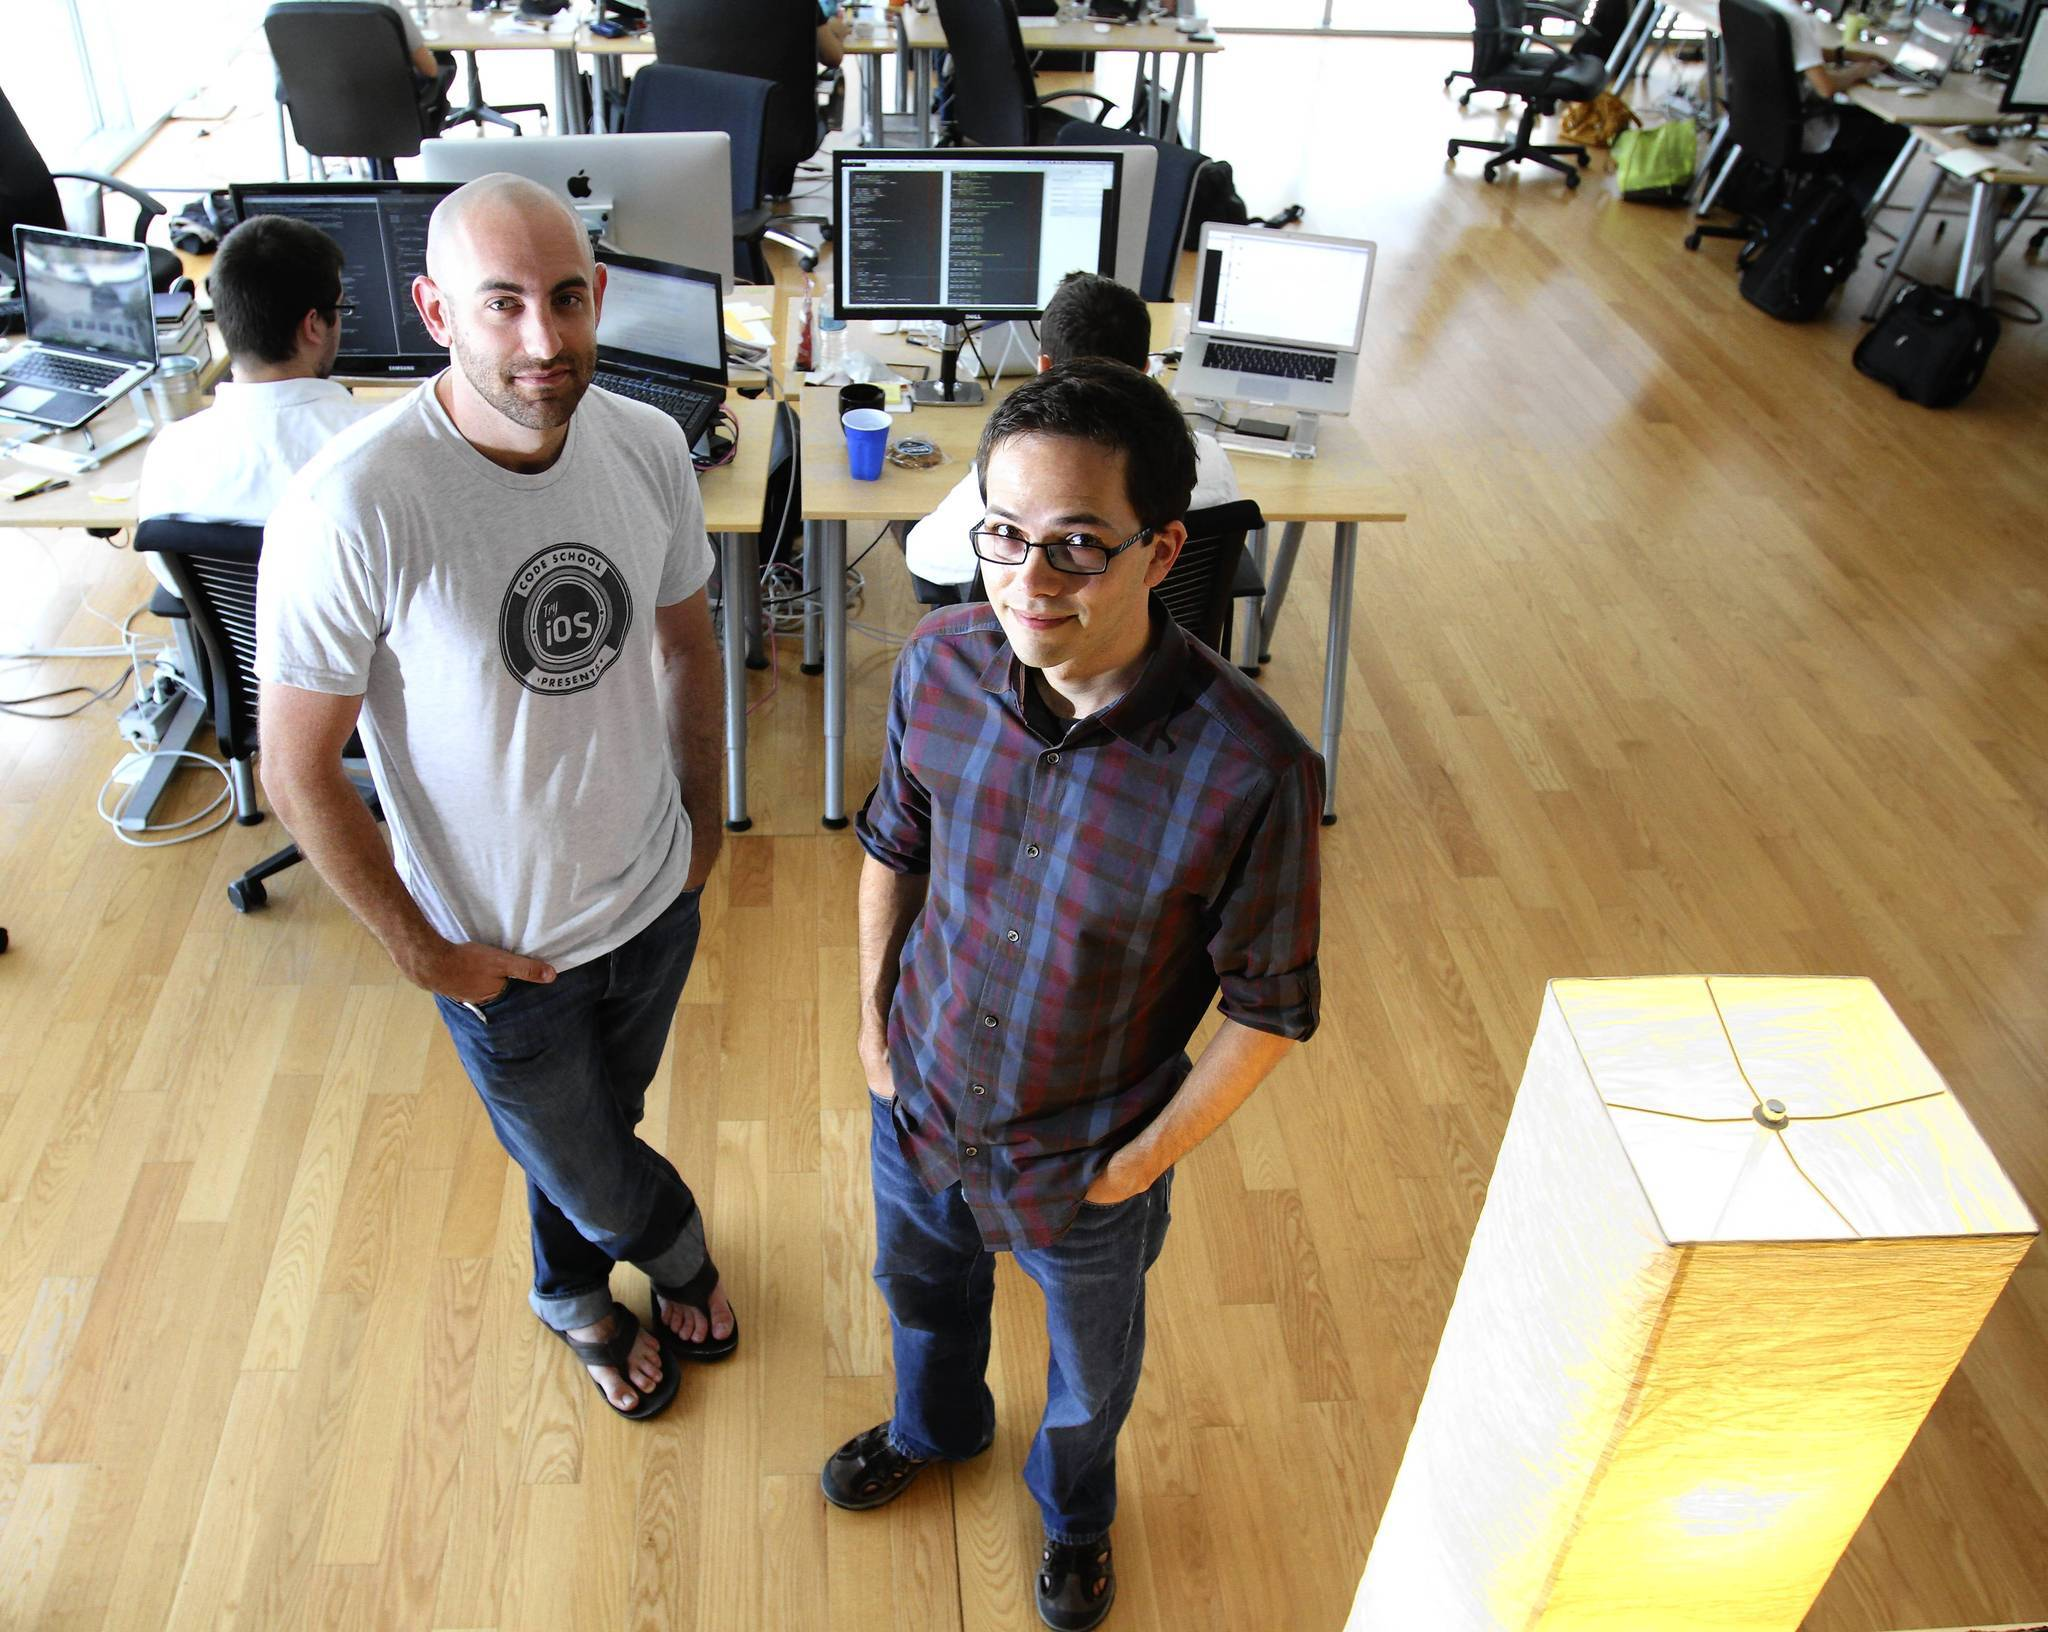 Eric Allam, left, and Gregg Pollack, at Envy Labs Code School in the Plaza in downtown Orlando, seek funding for Try iOS. (Joe Burbank, Orlando Sentinel)